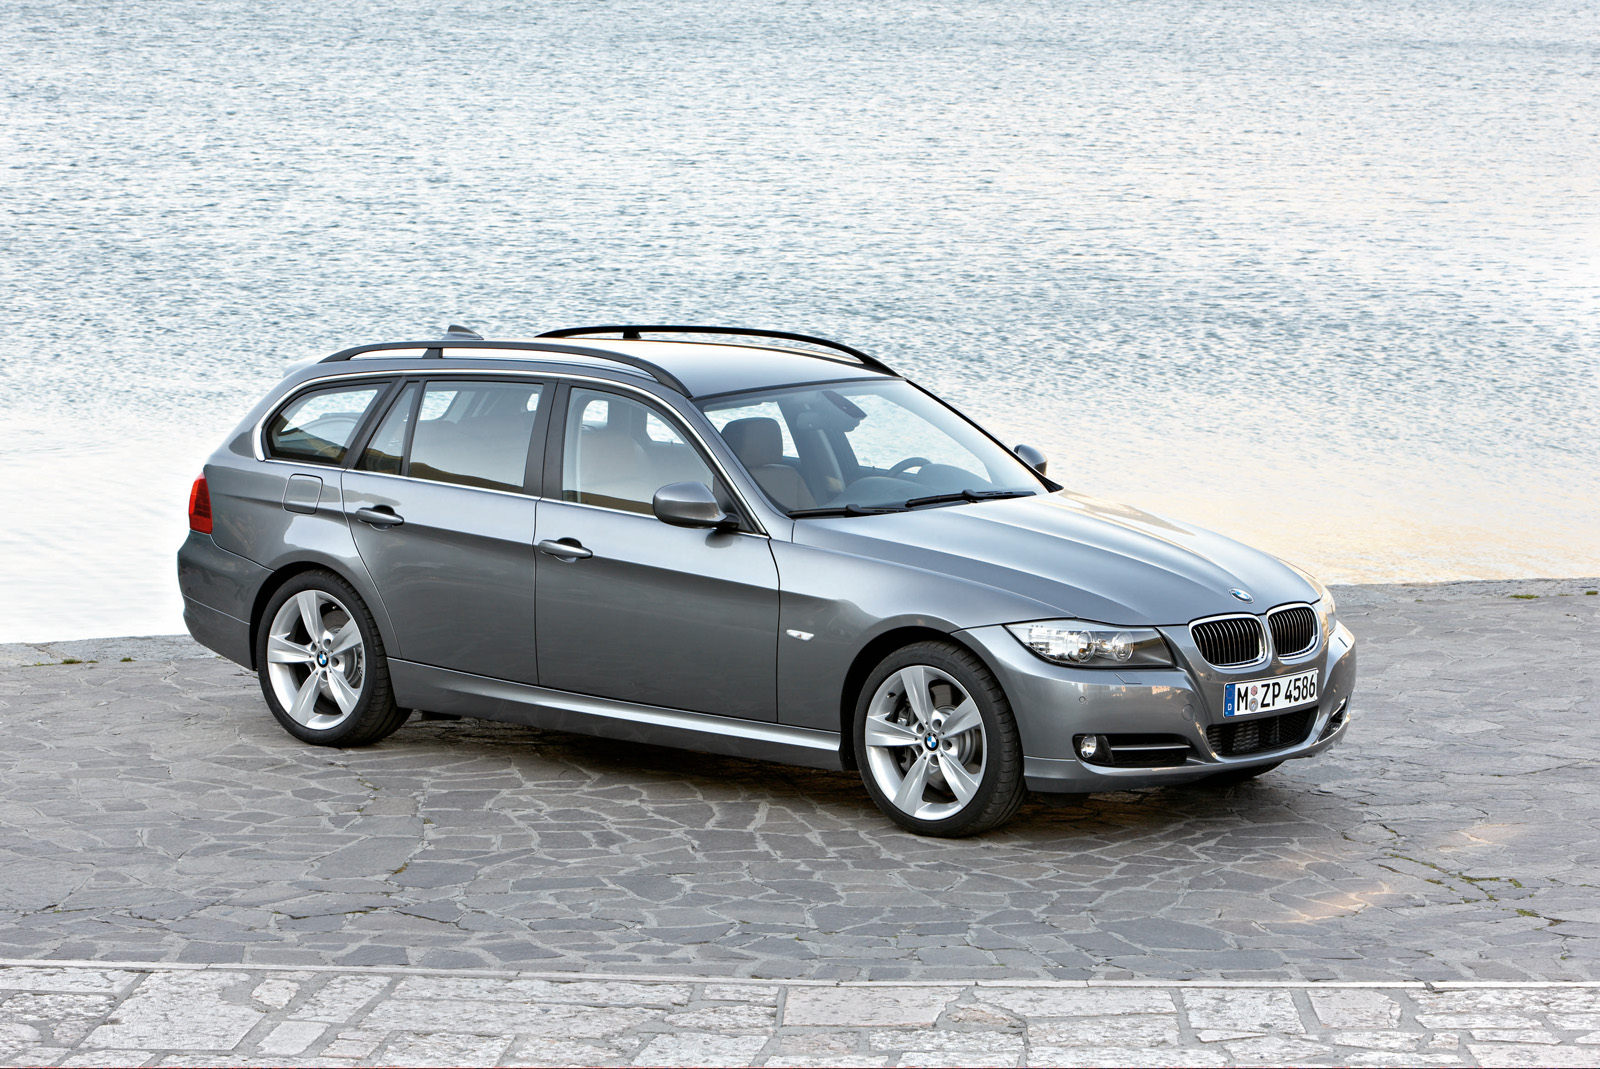 2009 bmw 3 series bmw auto cars. Black Bedroom Furniture Sets. Home Design Ideas